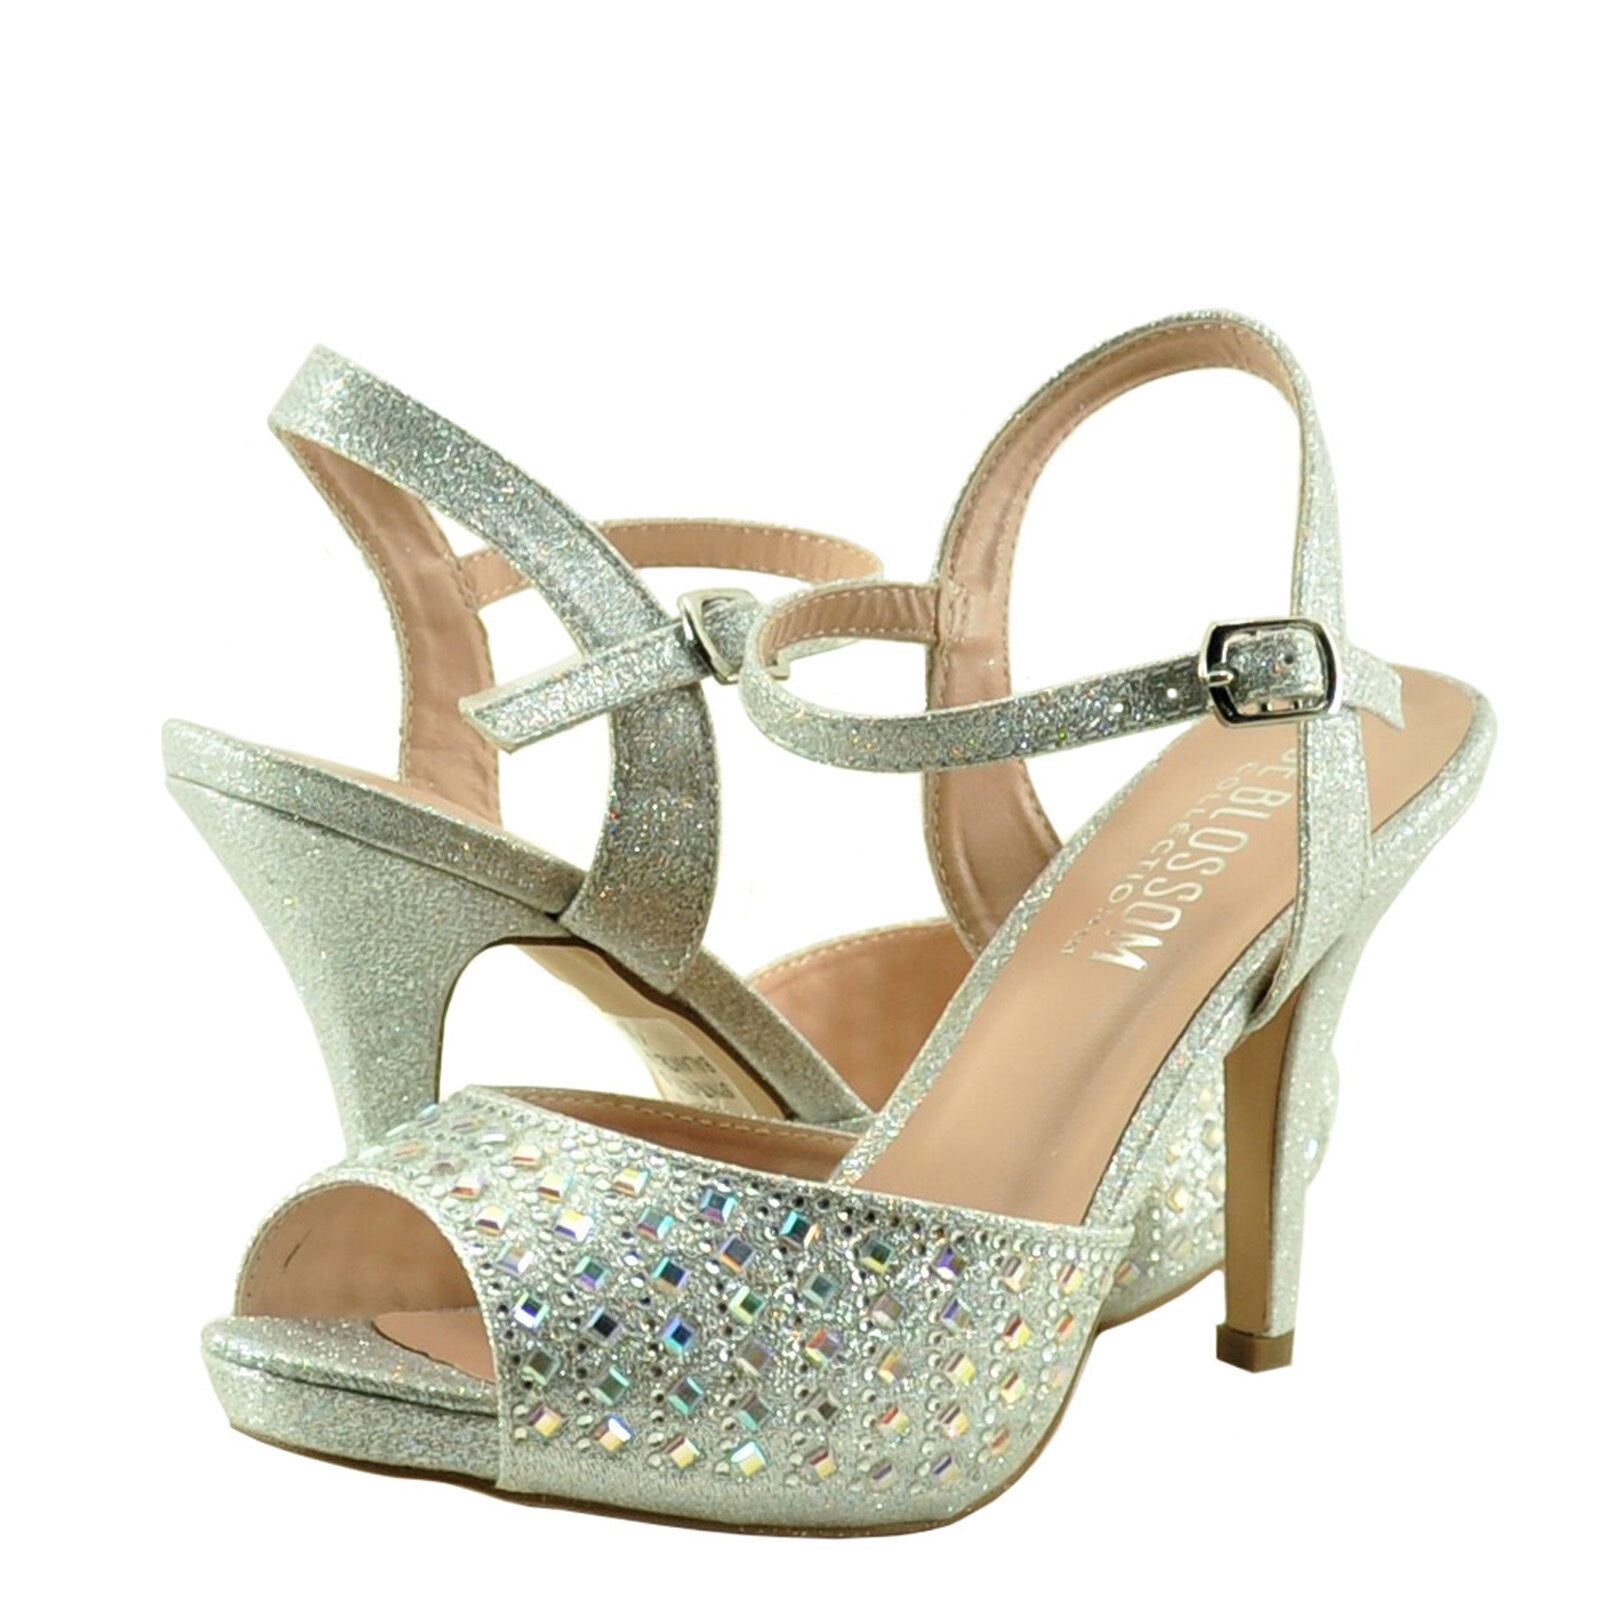 Women's shoes Blossom Robin 214 Peep Toe Crystal Strappy Heel Silver Sparkle New